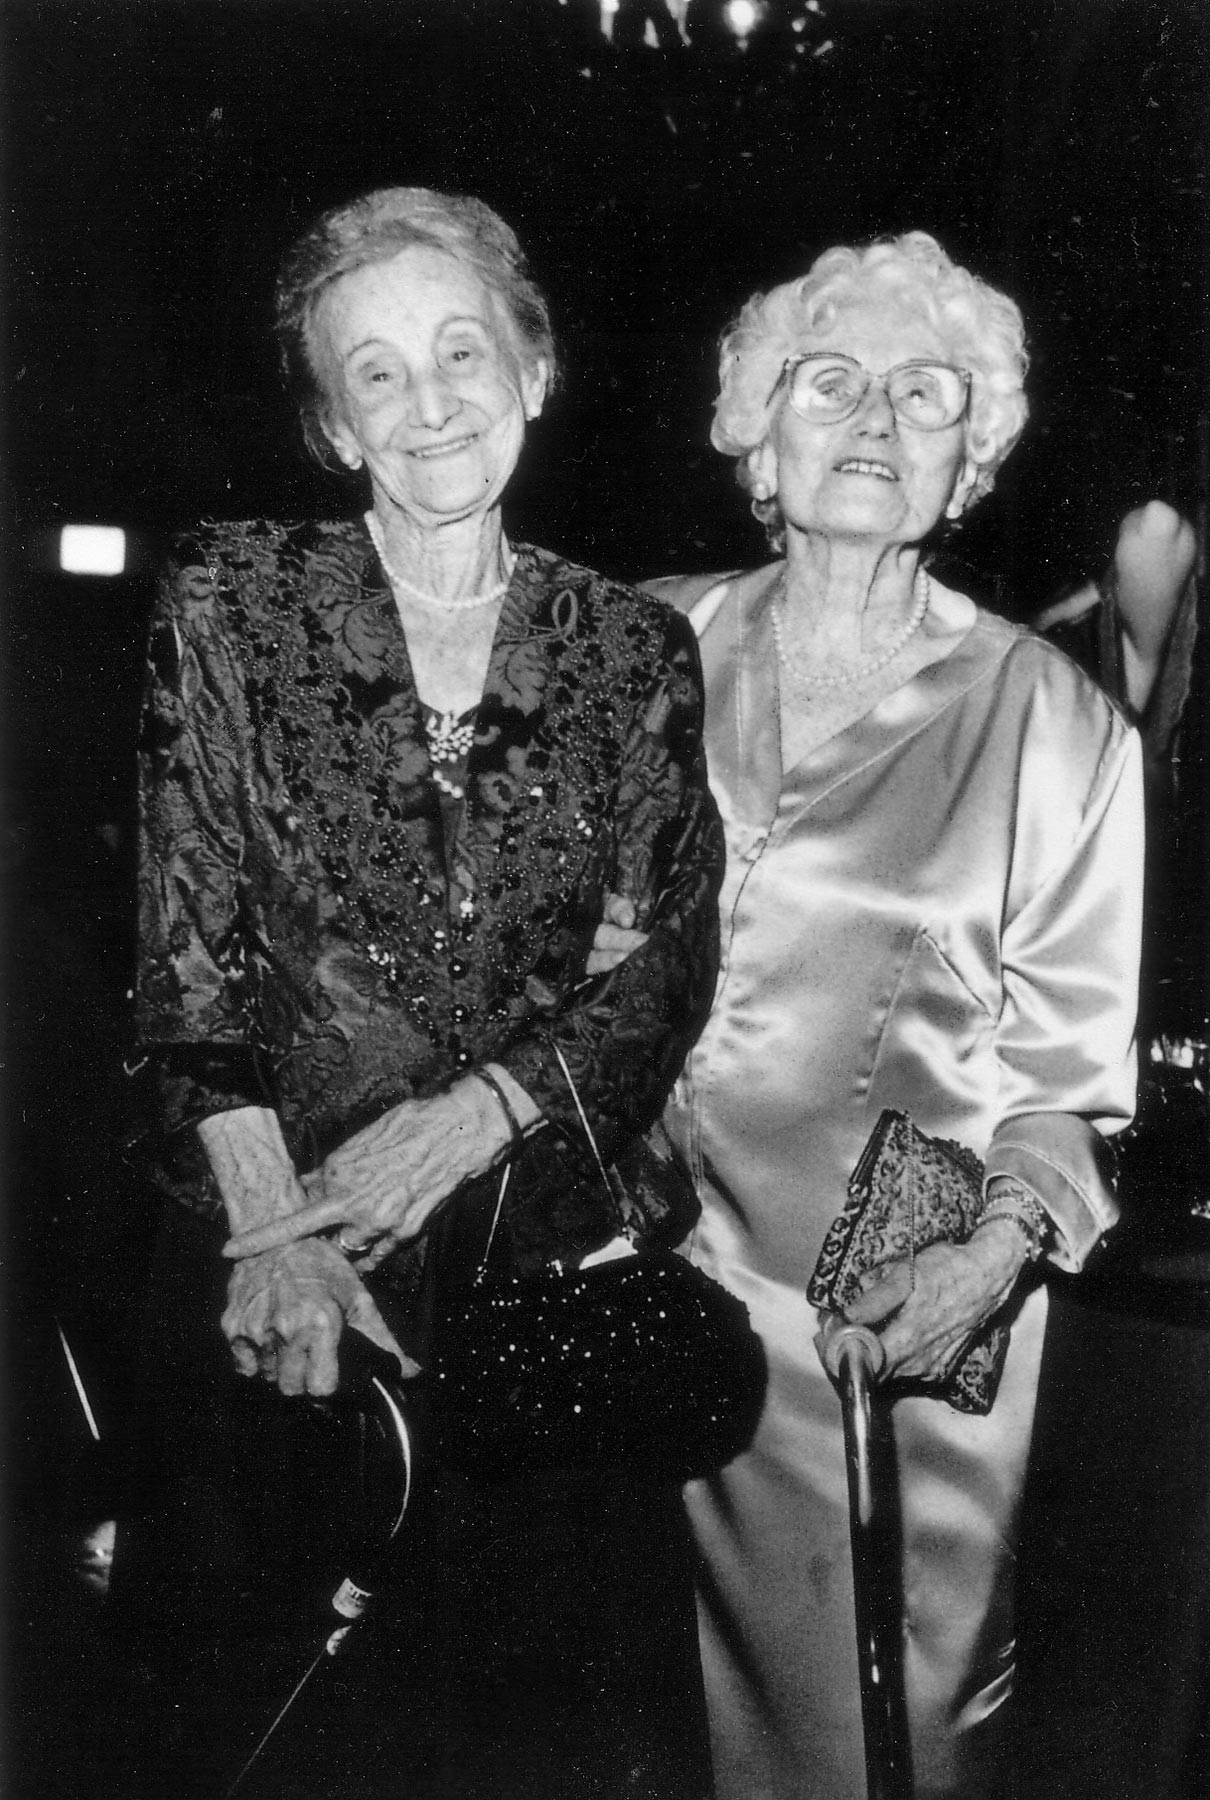 Aunt Sharika, left, and Grandma Piri, right, 1996.